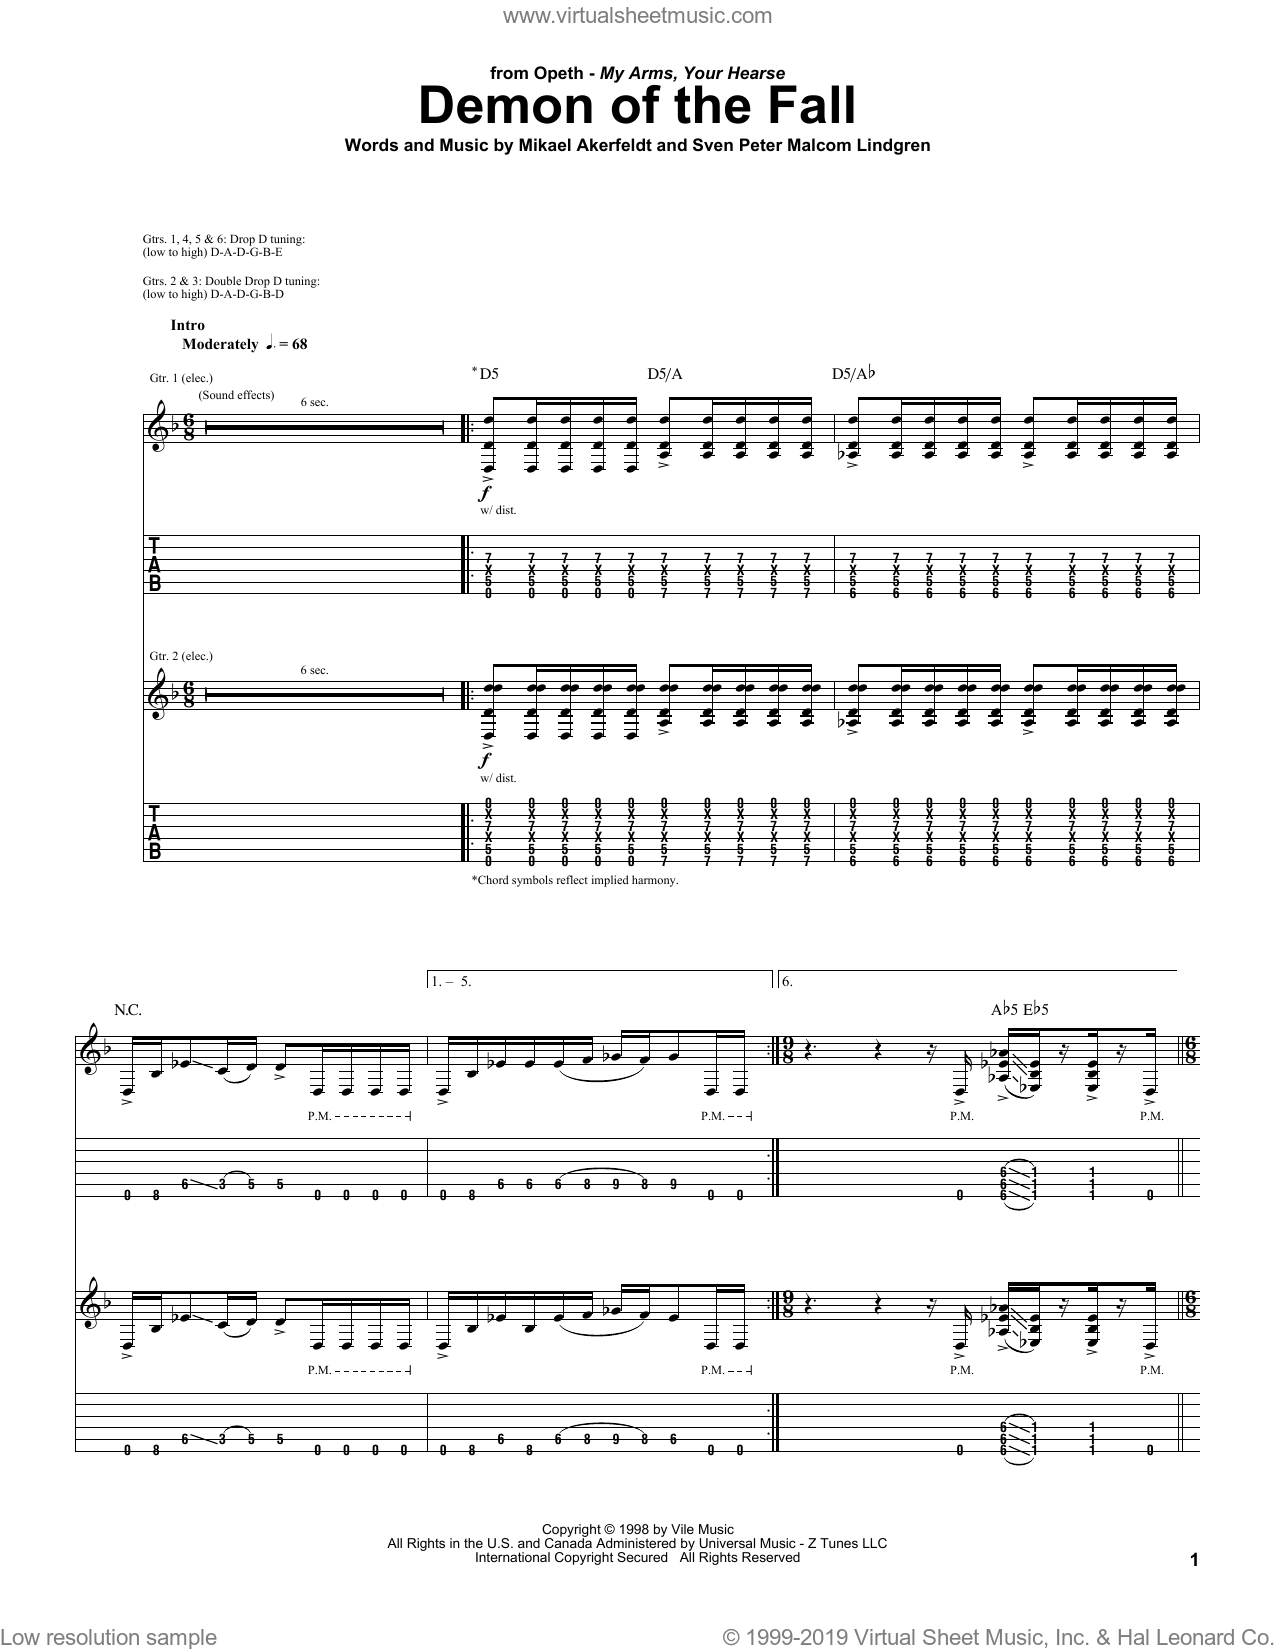 Demon Of The Fall sheet music for guitar (tablature) by Sven Peter Malcom Lindgren, Opeth and Mikael Akerfeldt. Score Image Preview.